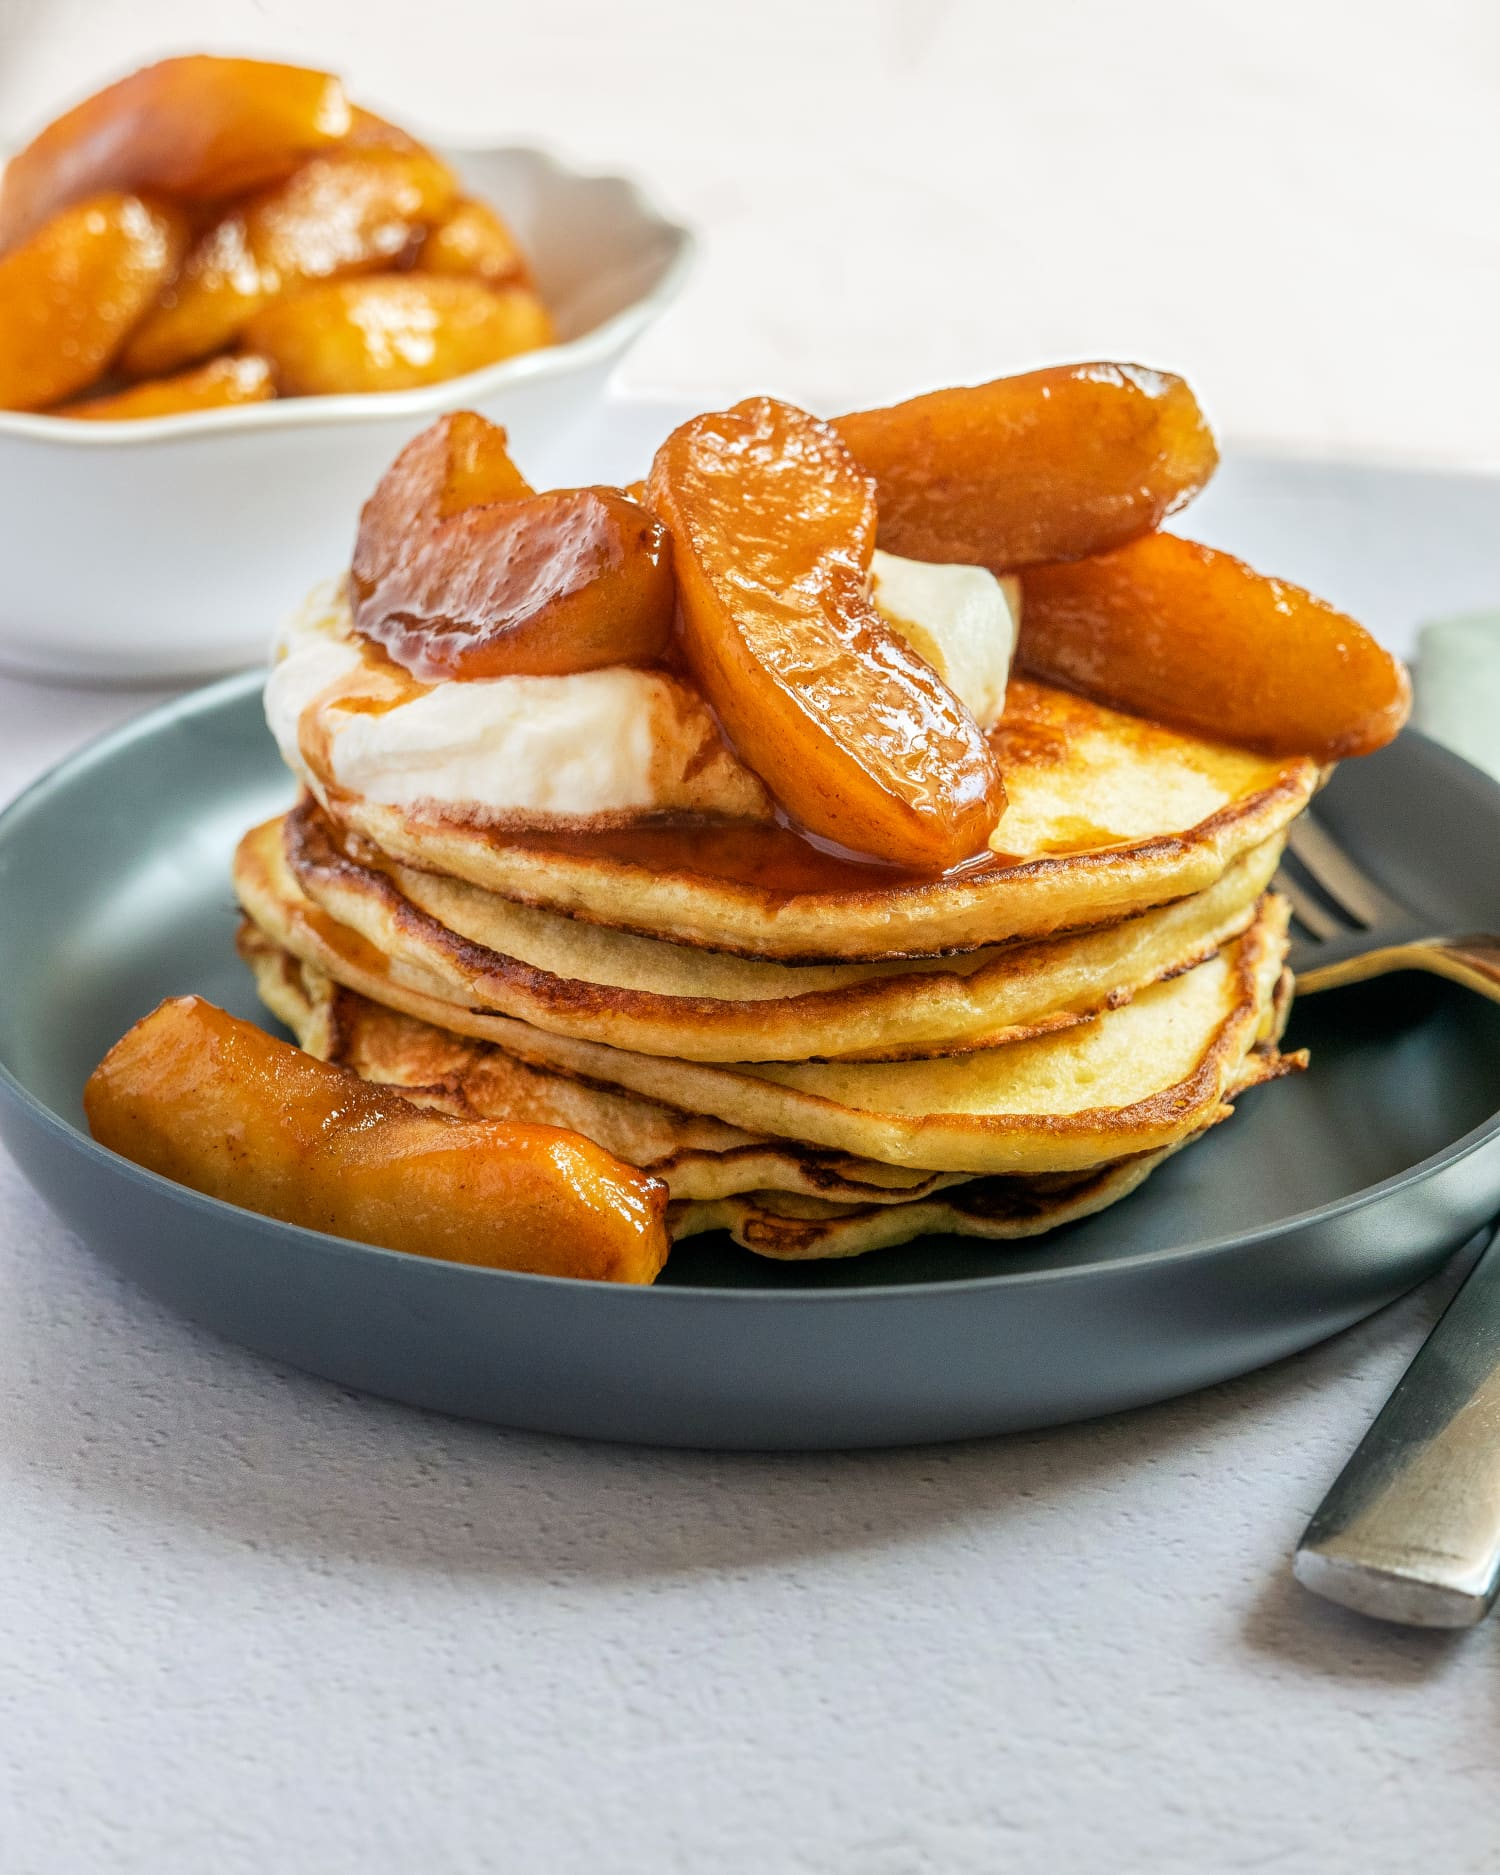 Cinnamon Apple Pancakes Should Be Your Top Priority This Fall